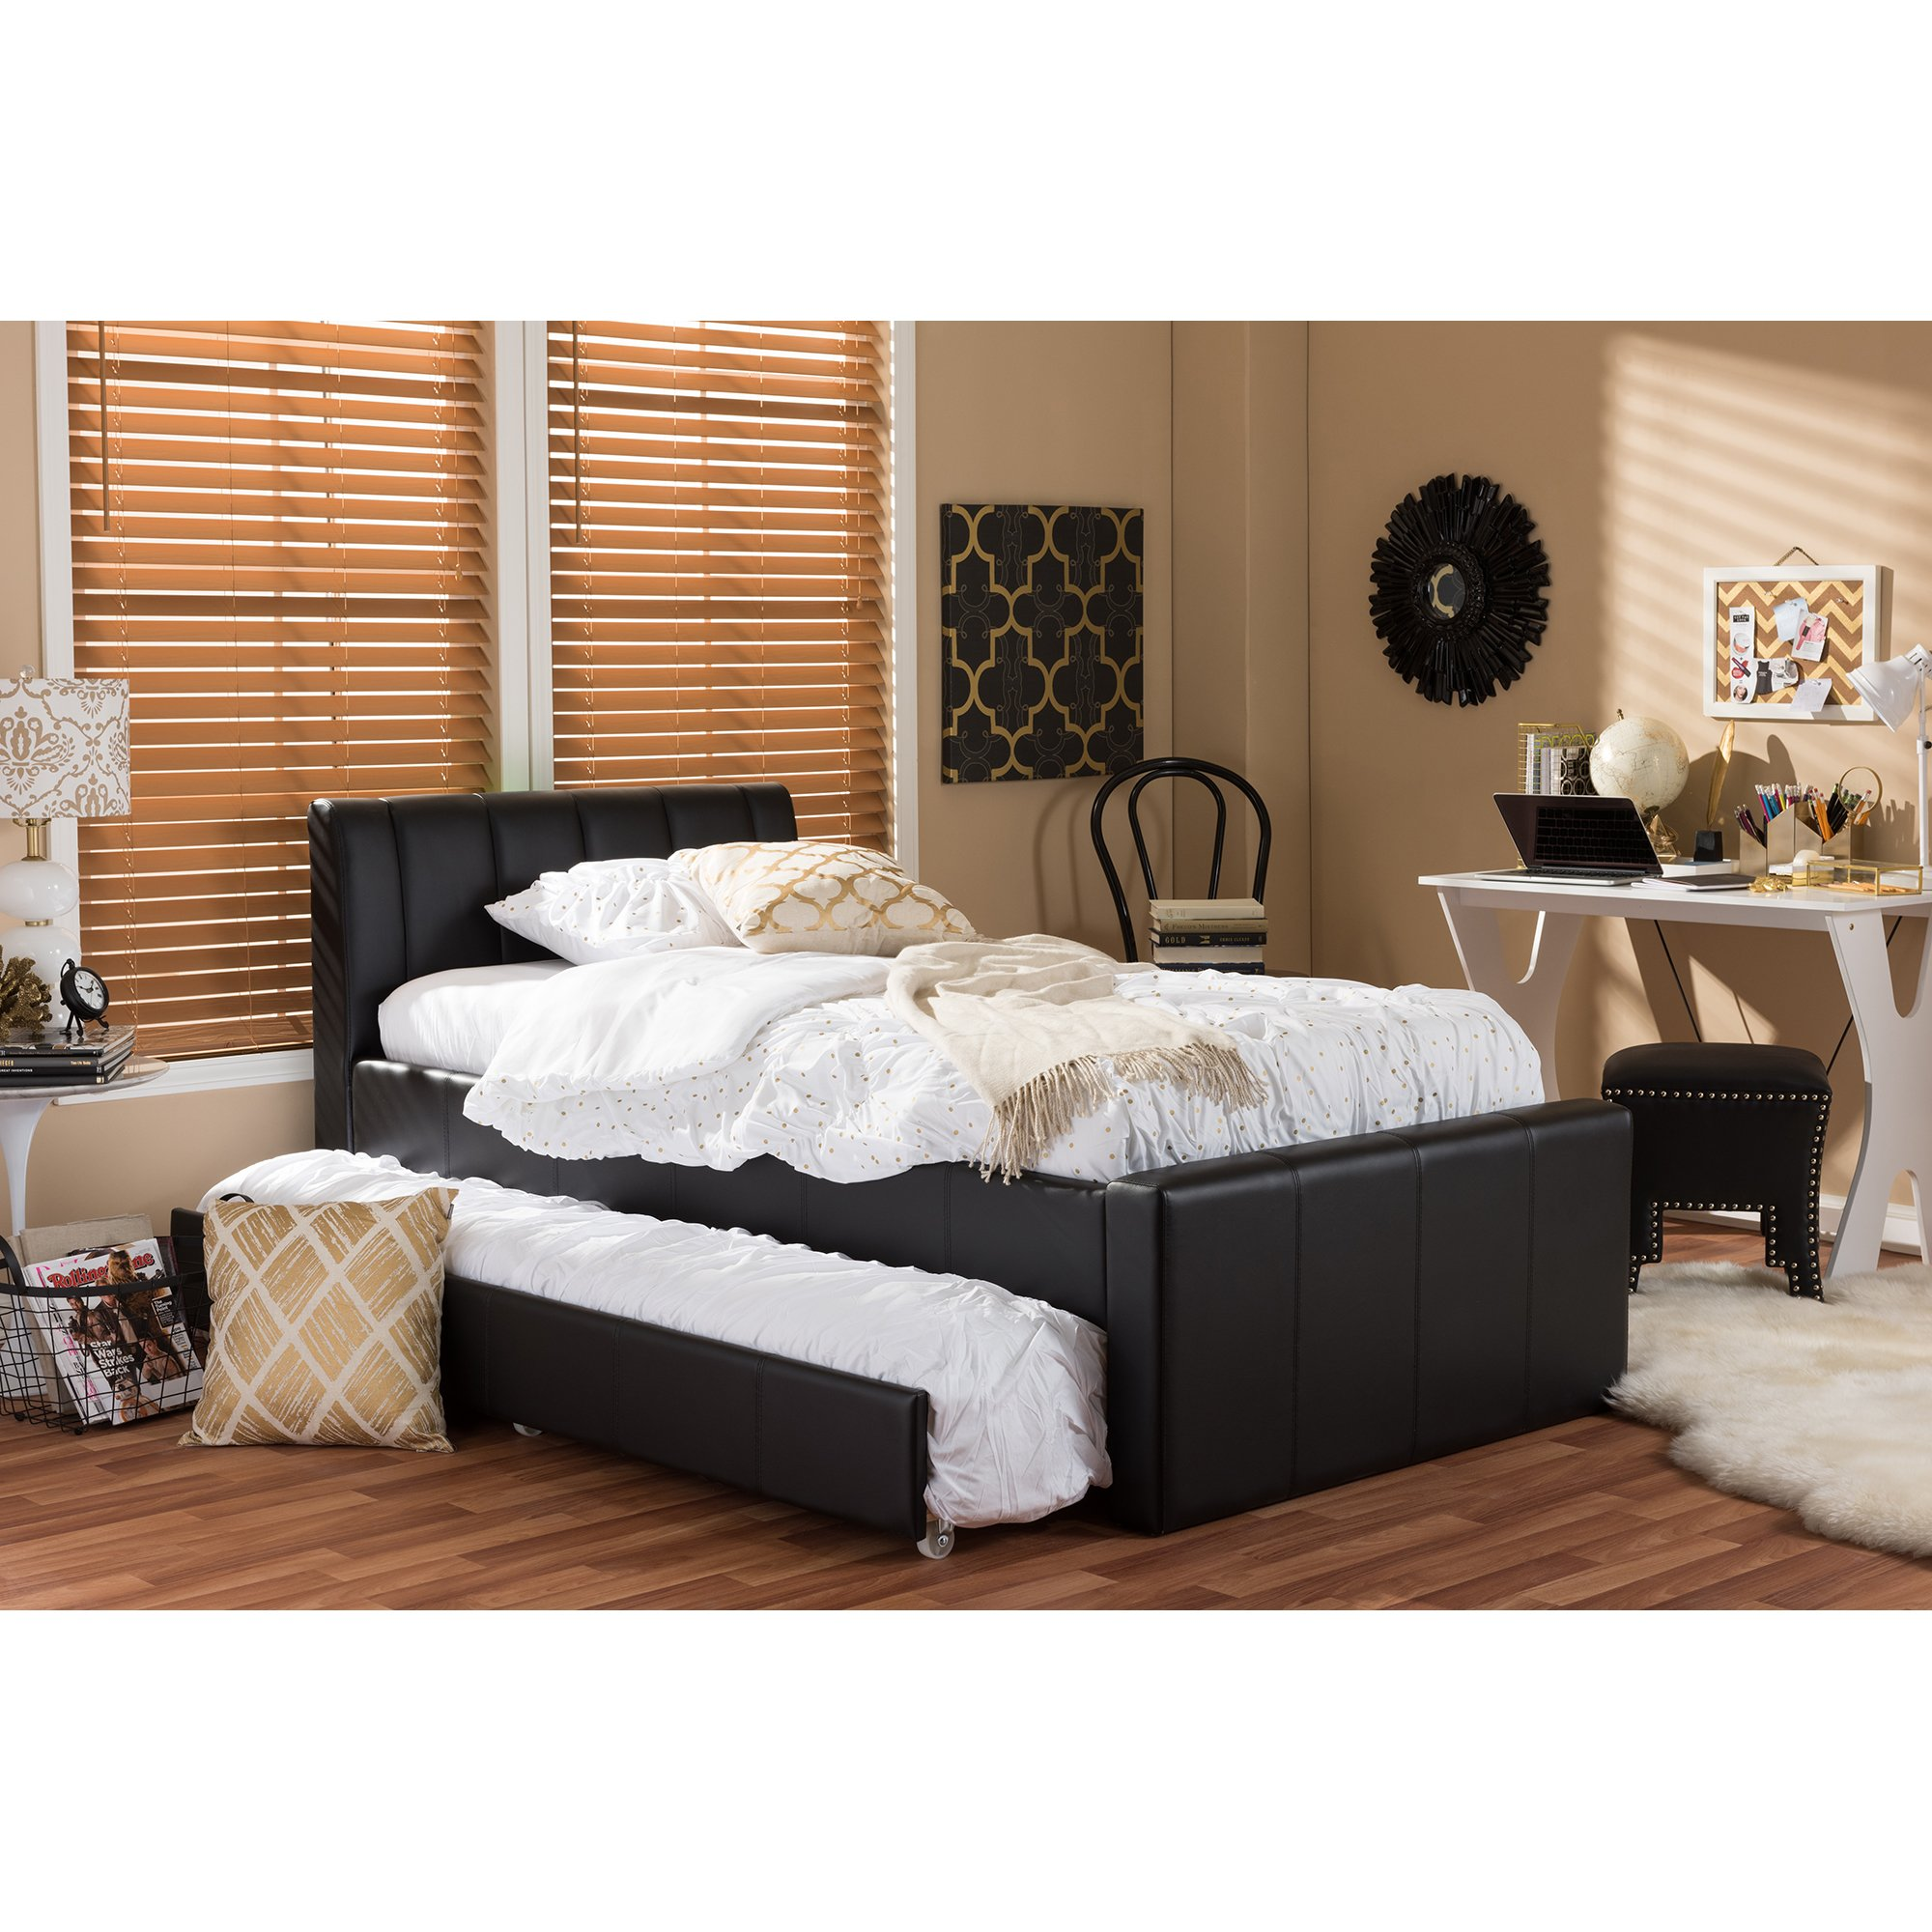 Baxton Studio Cosmo Modern and Contemporary Faux Leather Trundle Bed, Twin, Black by Baxton Studio